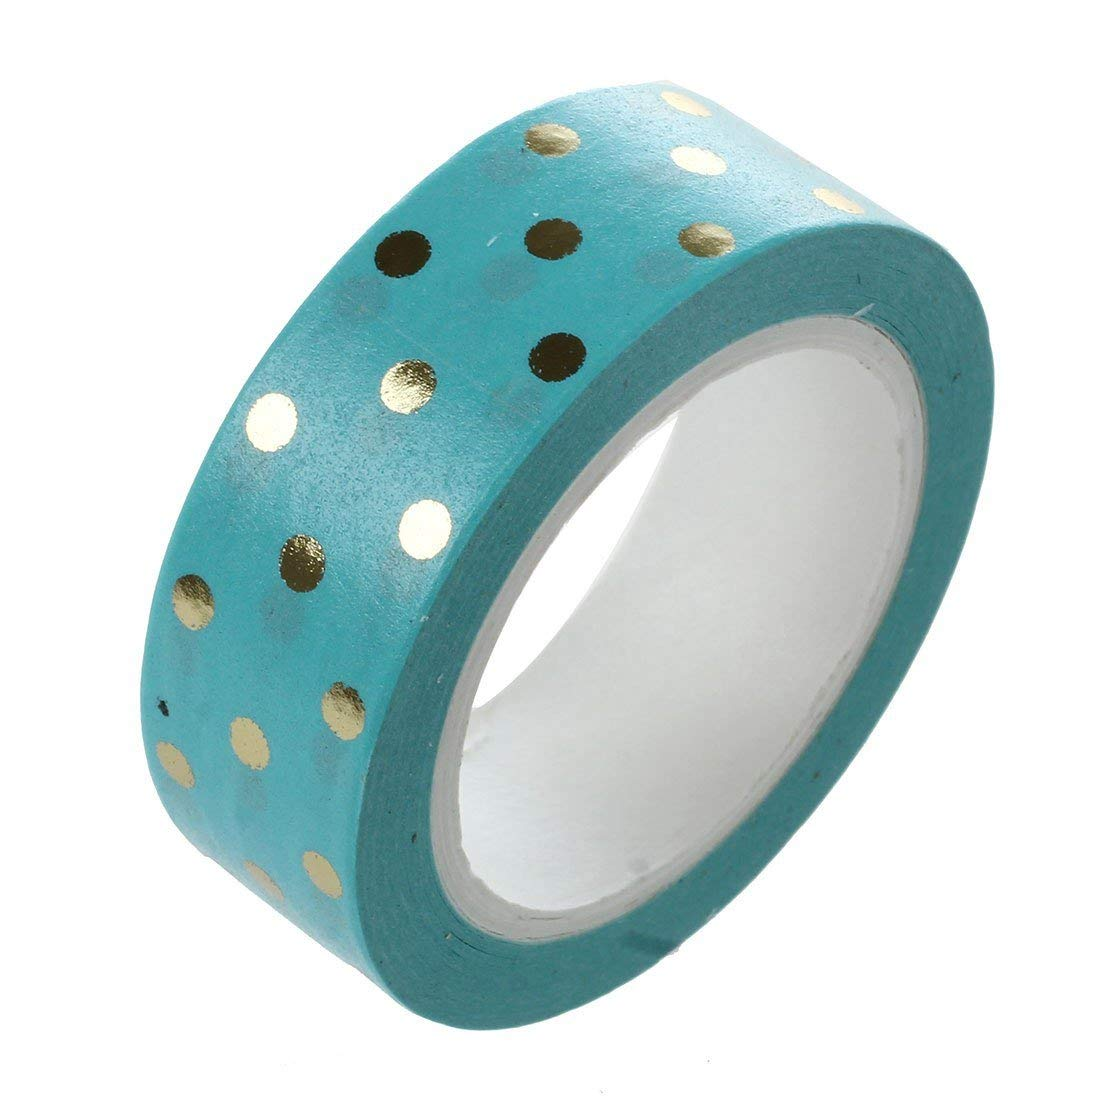 Foil Gold Masking Tape Decorative Craft Tape Collection for DIY and Gift Wrapping Kaifa Foil Gold 6 Rolls-Blue+Love+Music